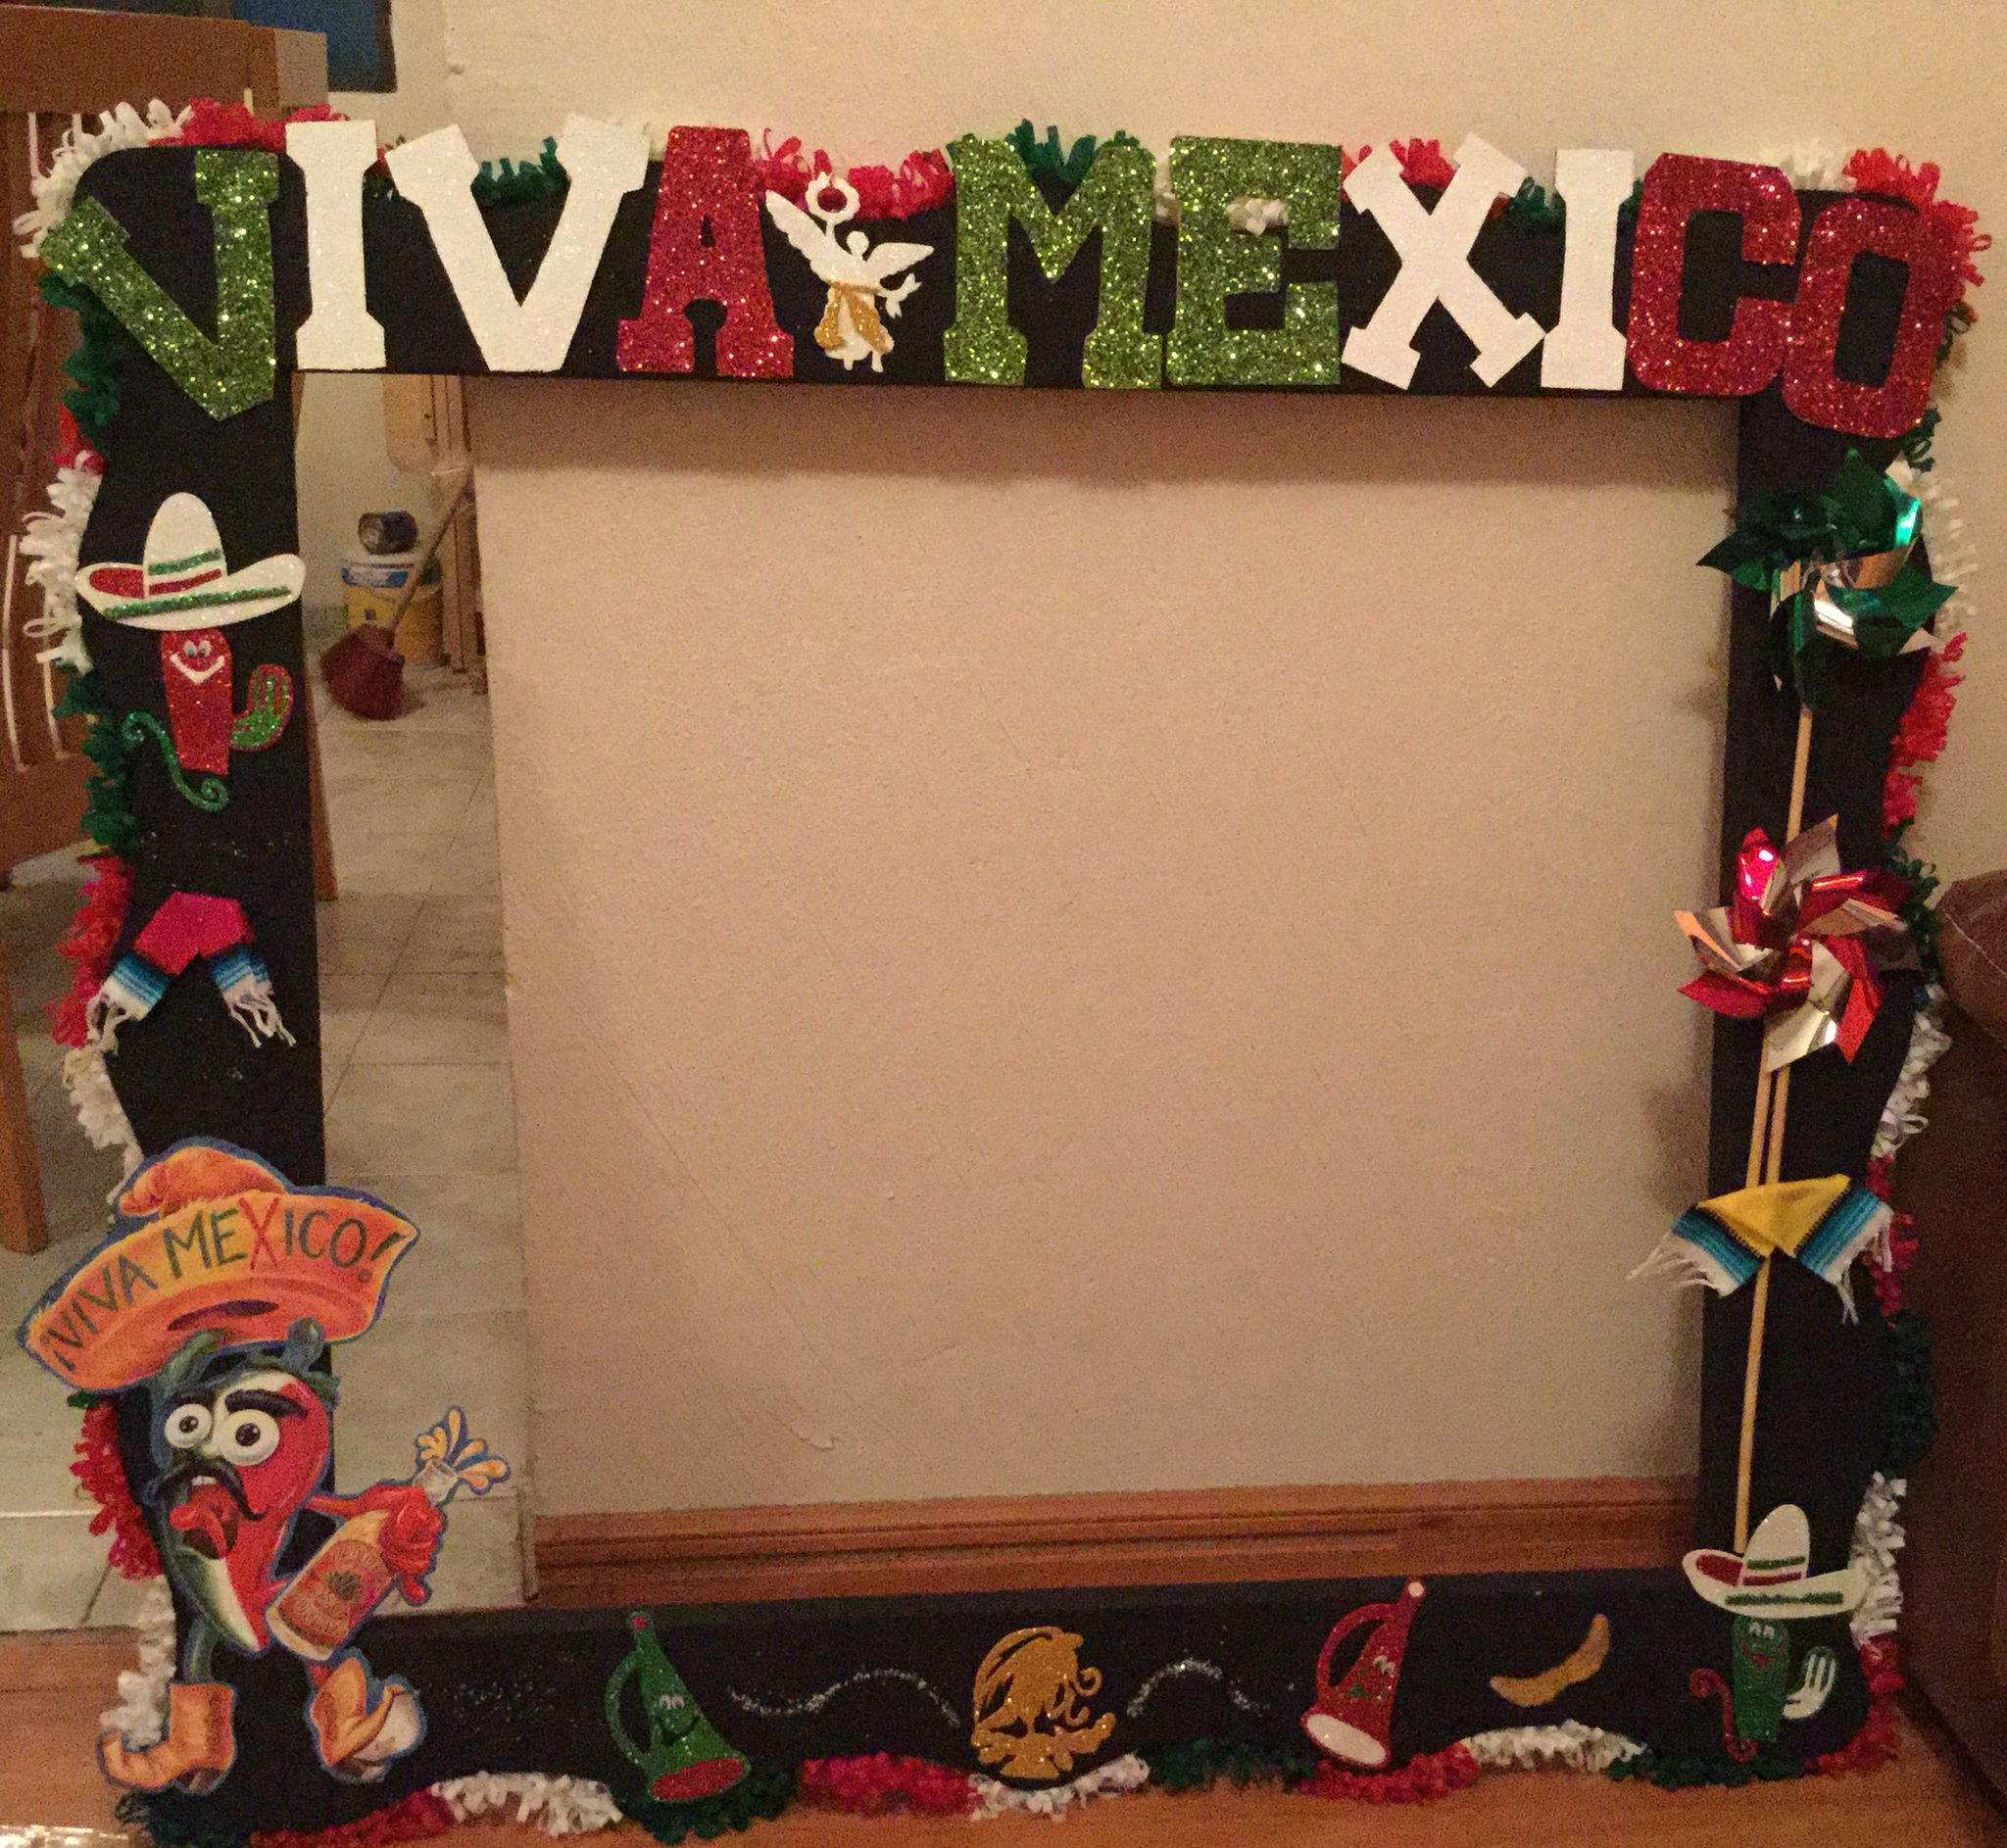 Photobooth fiestaspatrias tricolor marco mexican for Decoracion kermes mexicana